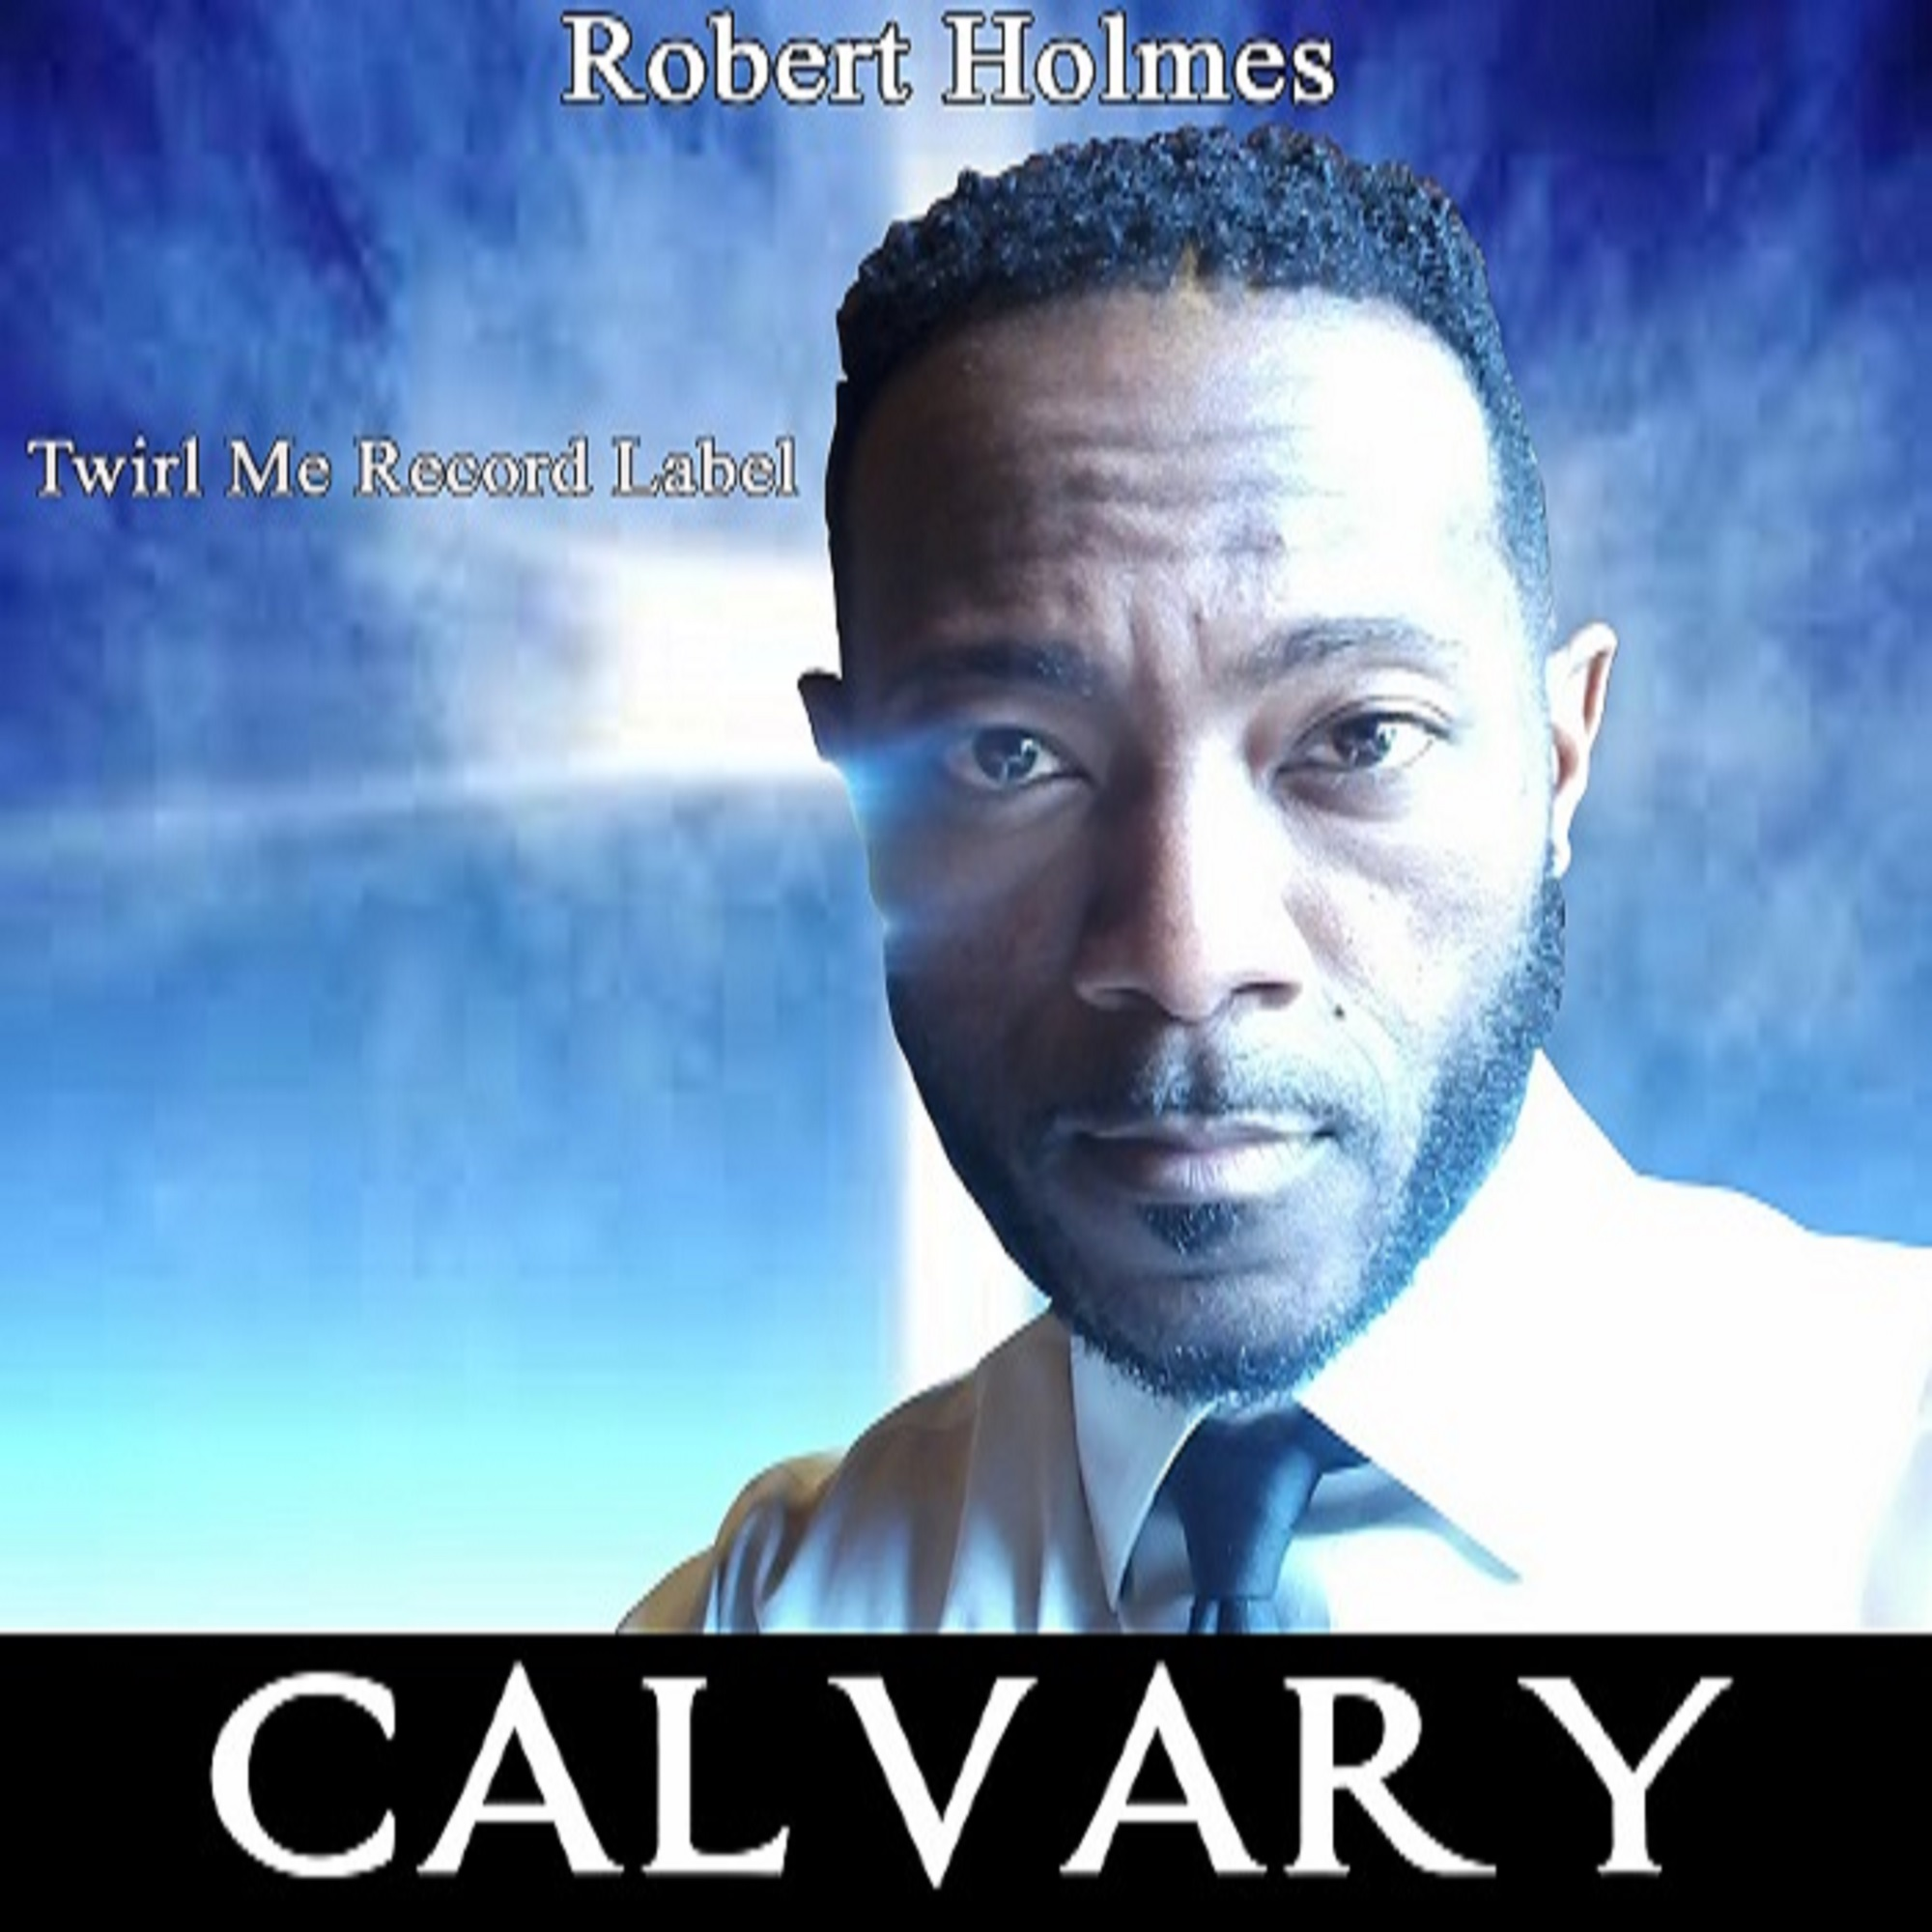 Art for Calvary by Robert Holmes